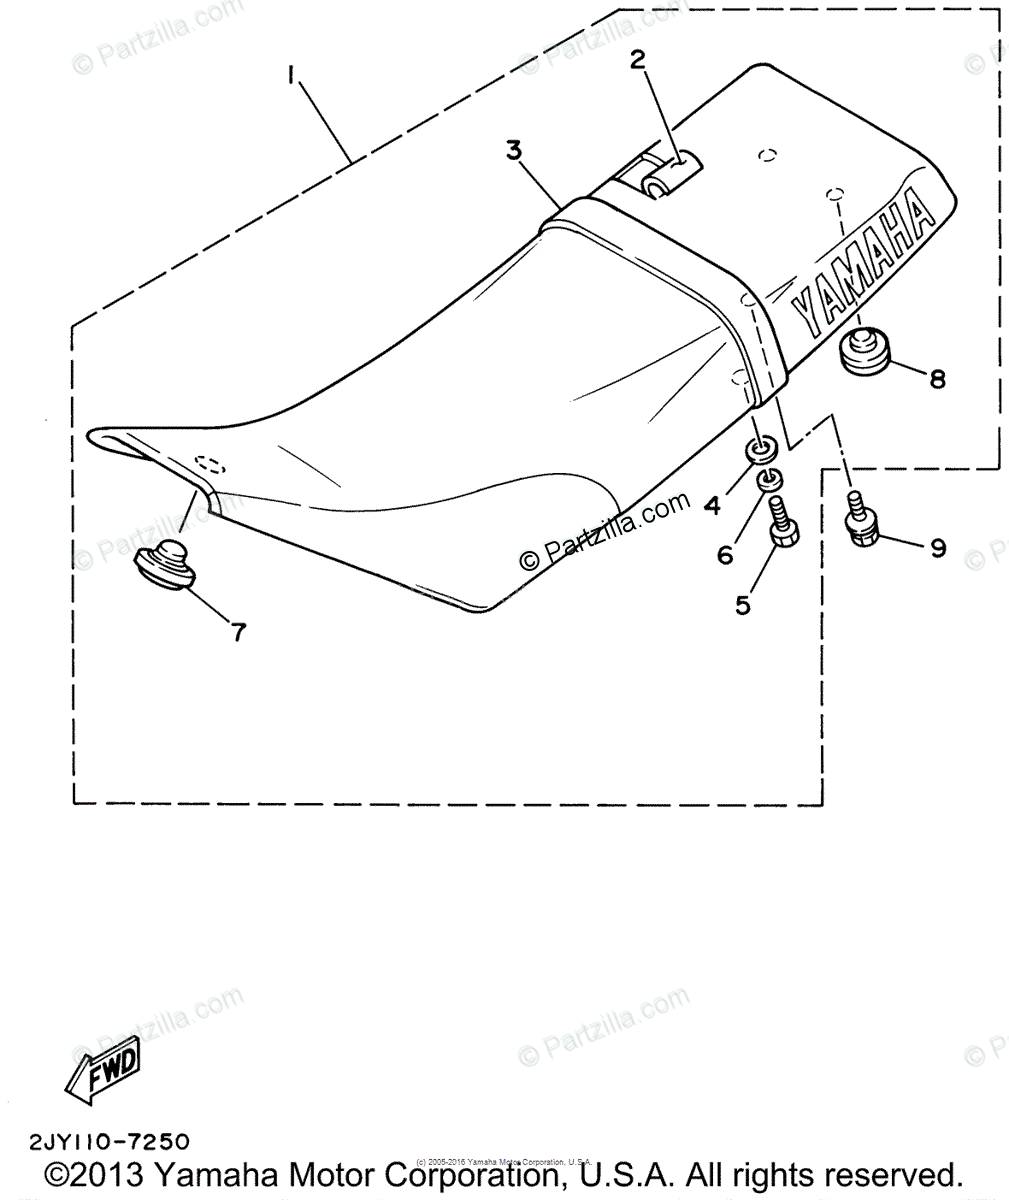 Yamaha Motorcycle 2002 OEM Parts Diagram for Seat